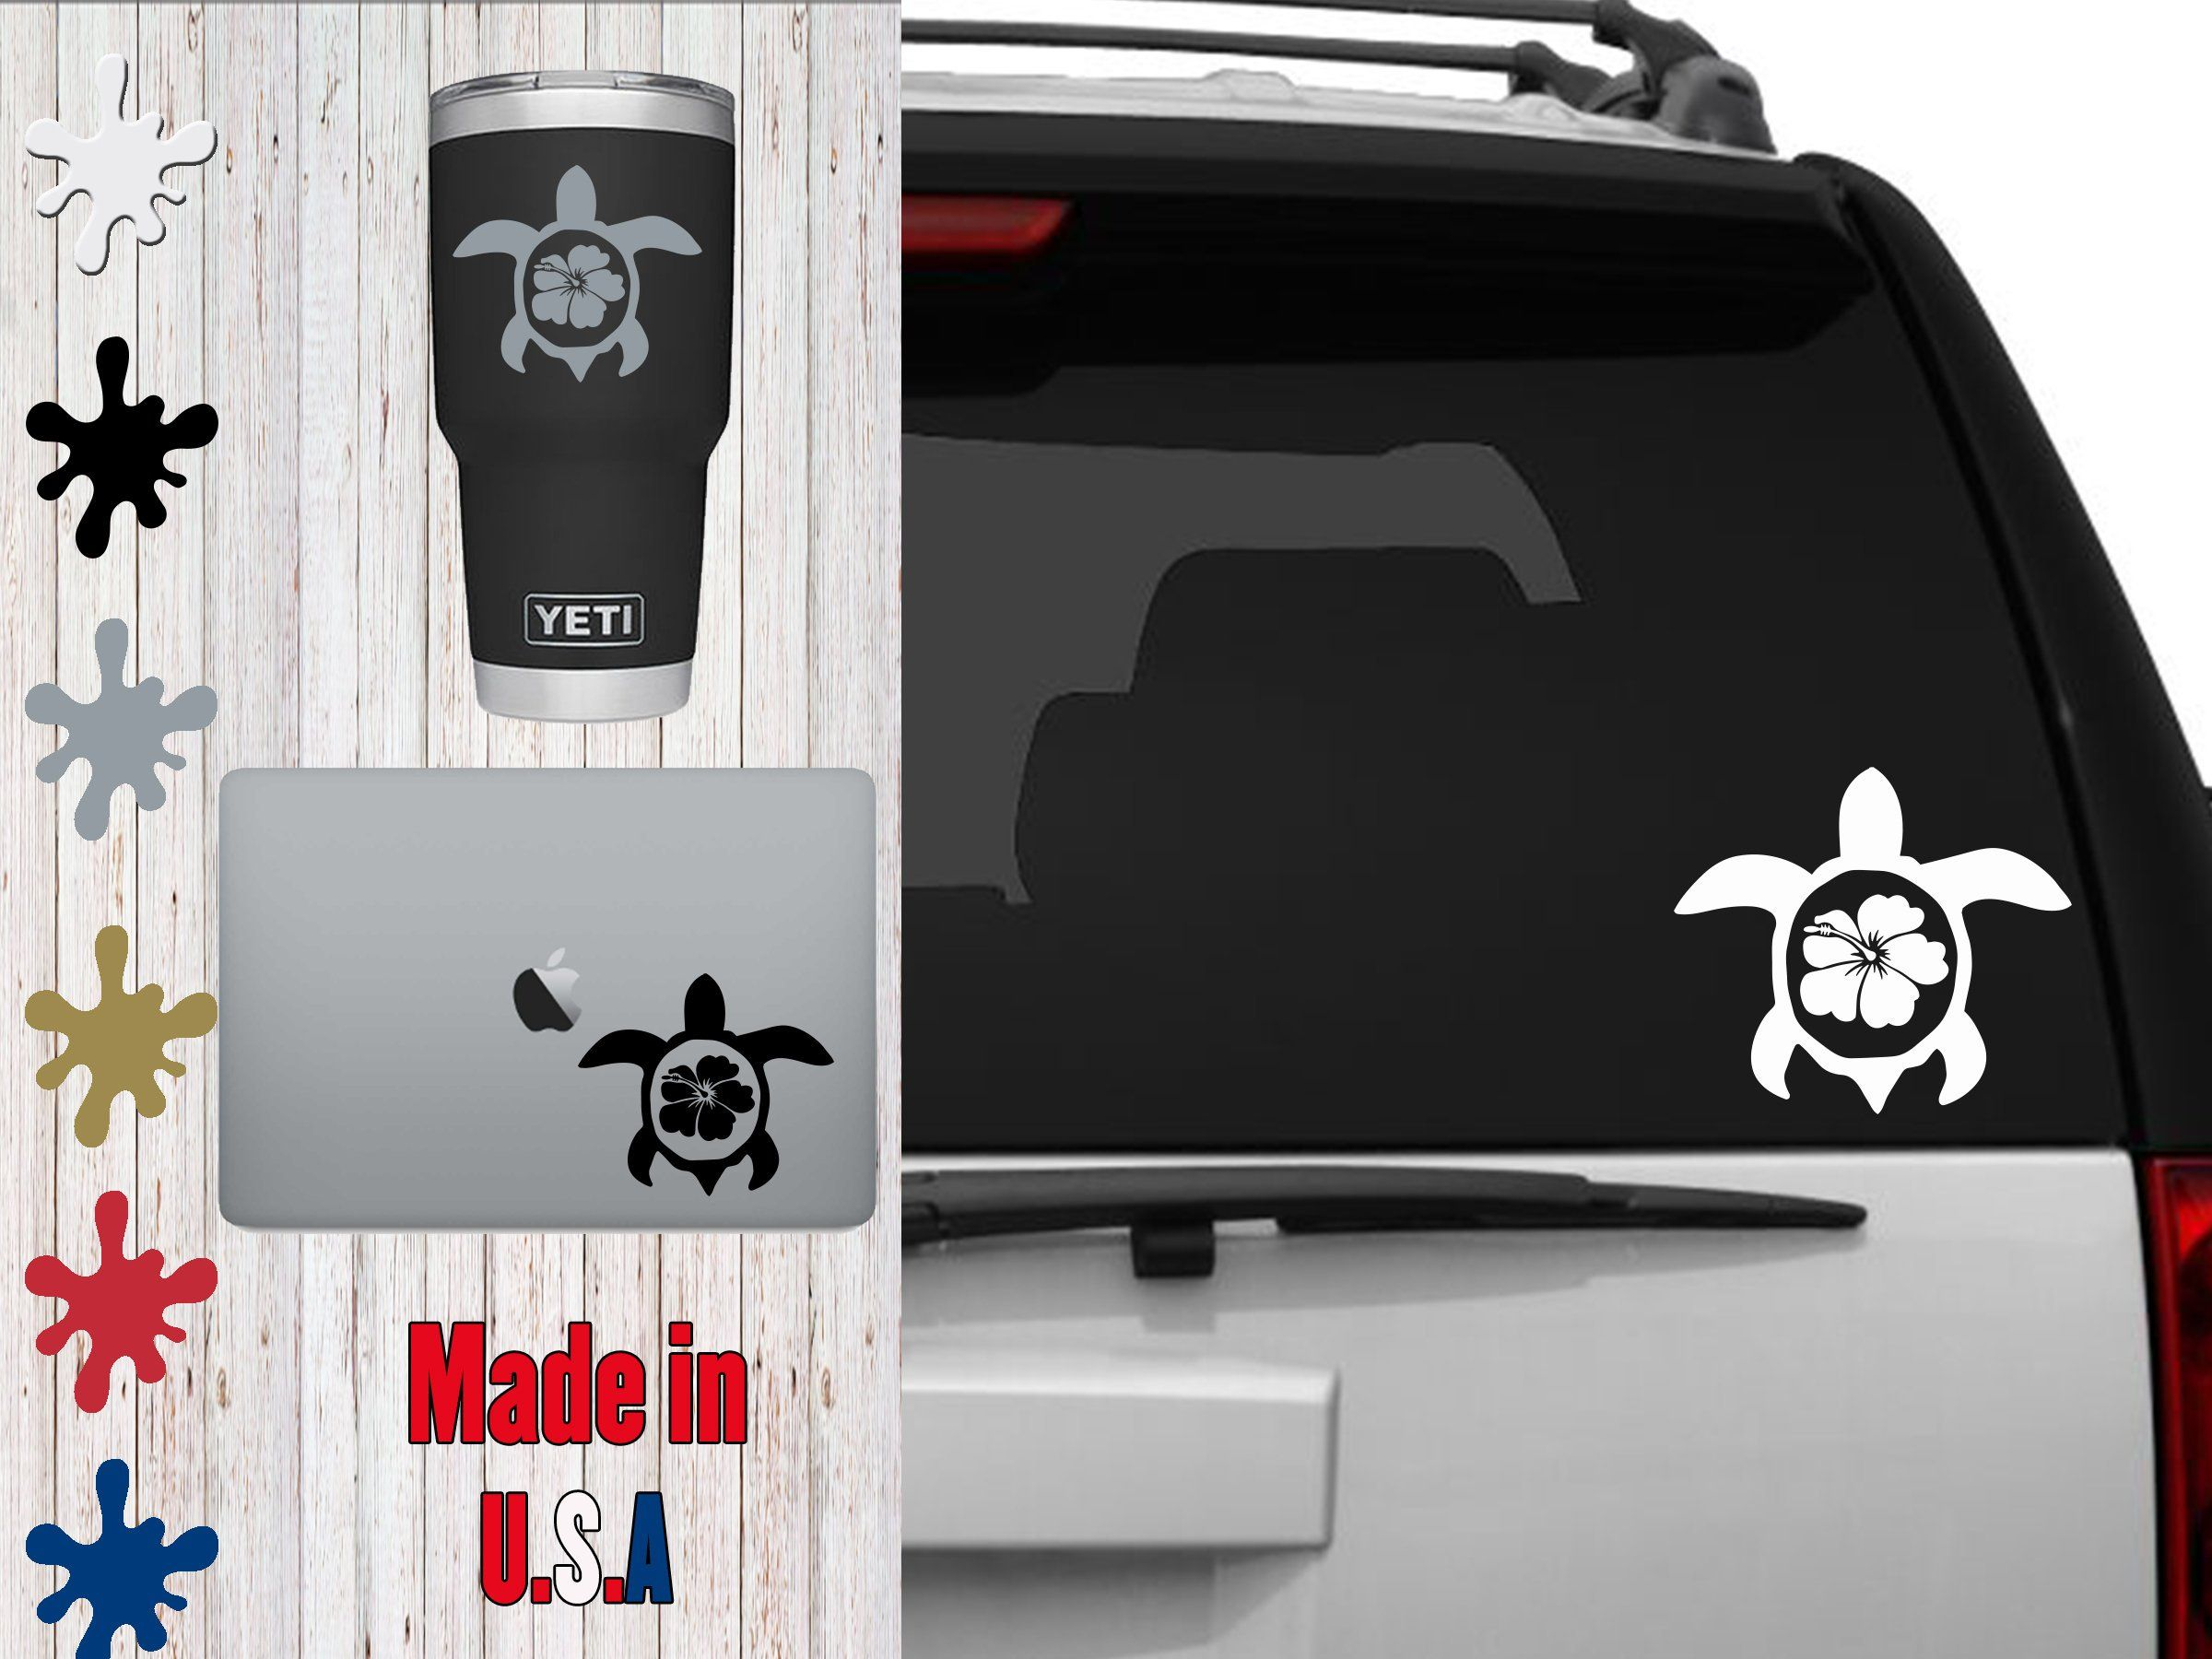 Hawaii Sea Turtle Decal Choose Your Size Car Decal Laptop Decal Mug Decal Tumbler Decal Cup Decal Phone Decal Sea Turtle Decal Phone Decals Cup Decal [ 1800 x 2400 Pixel ]